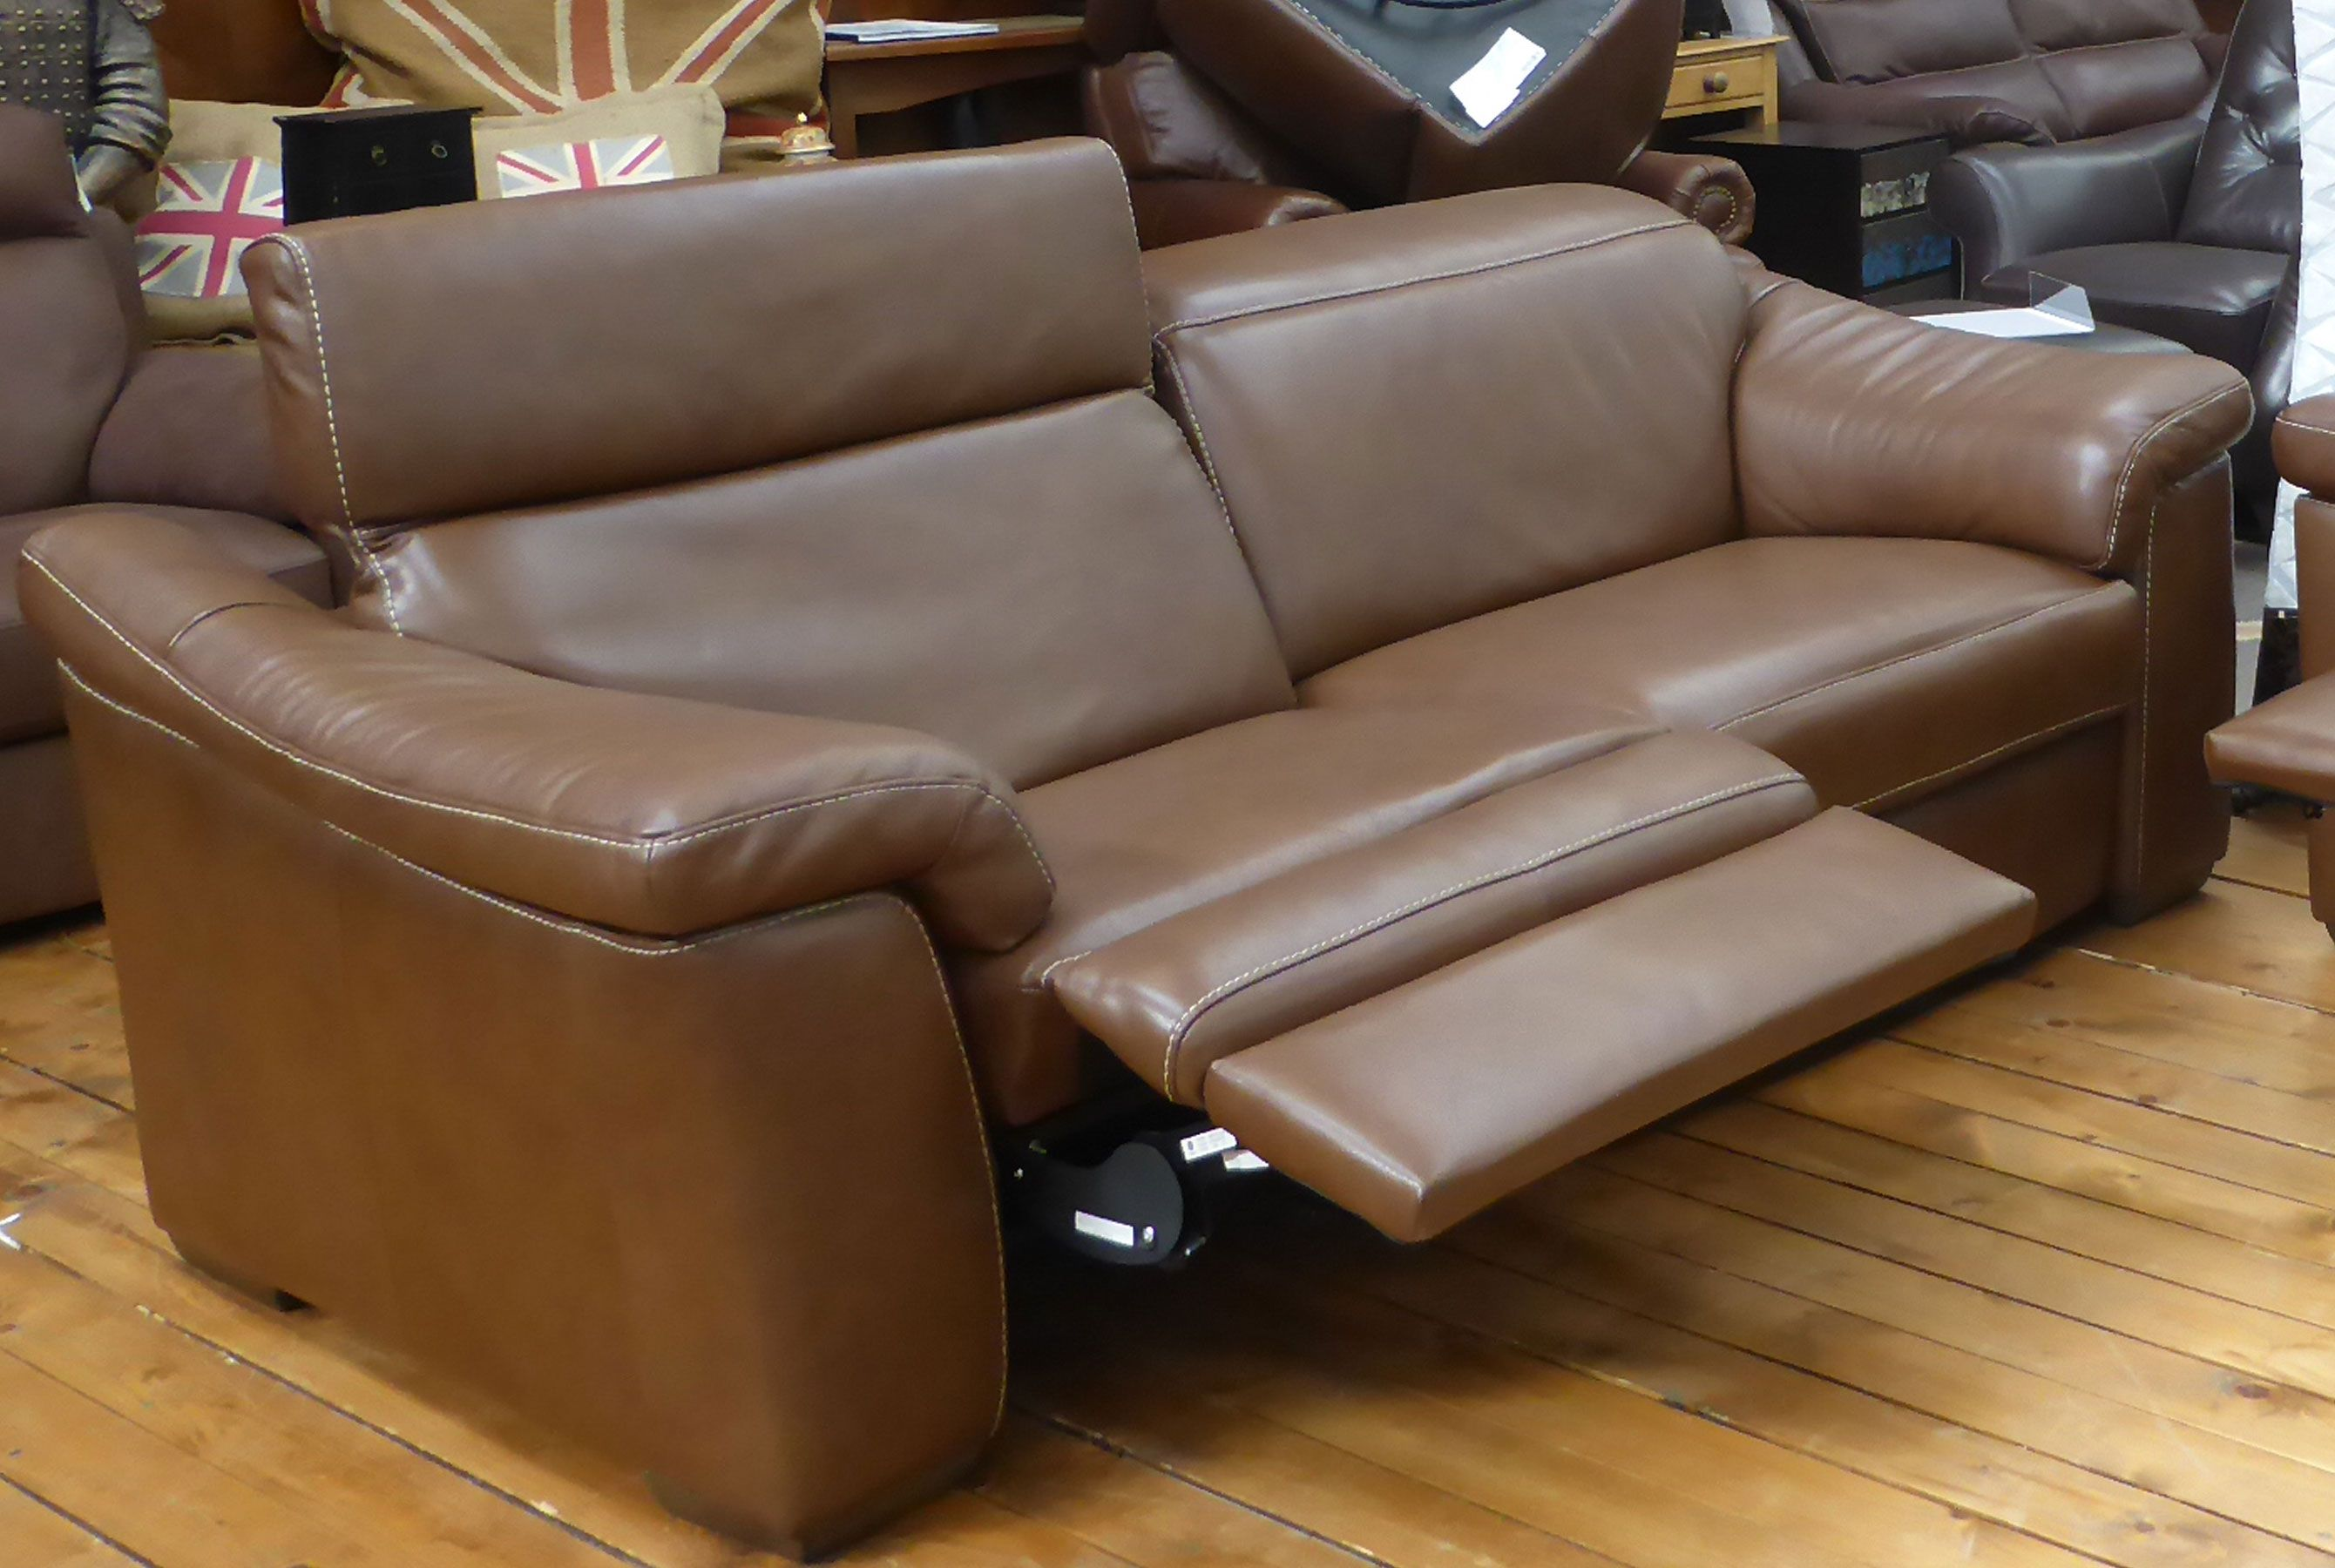 Simbiosi B760 100 Top Grain Leather Sofas And Sectionals